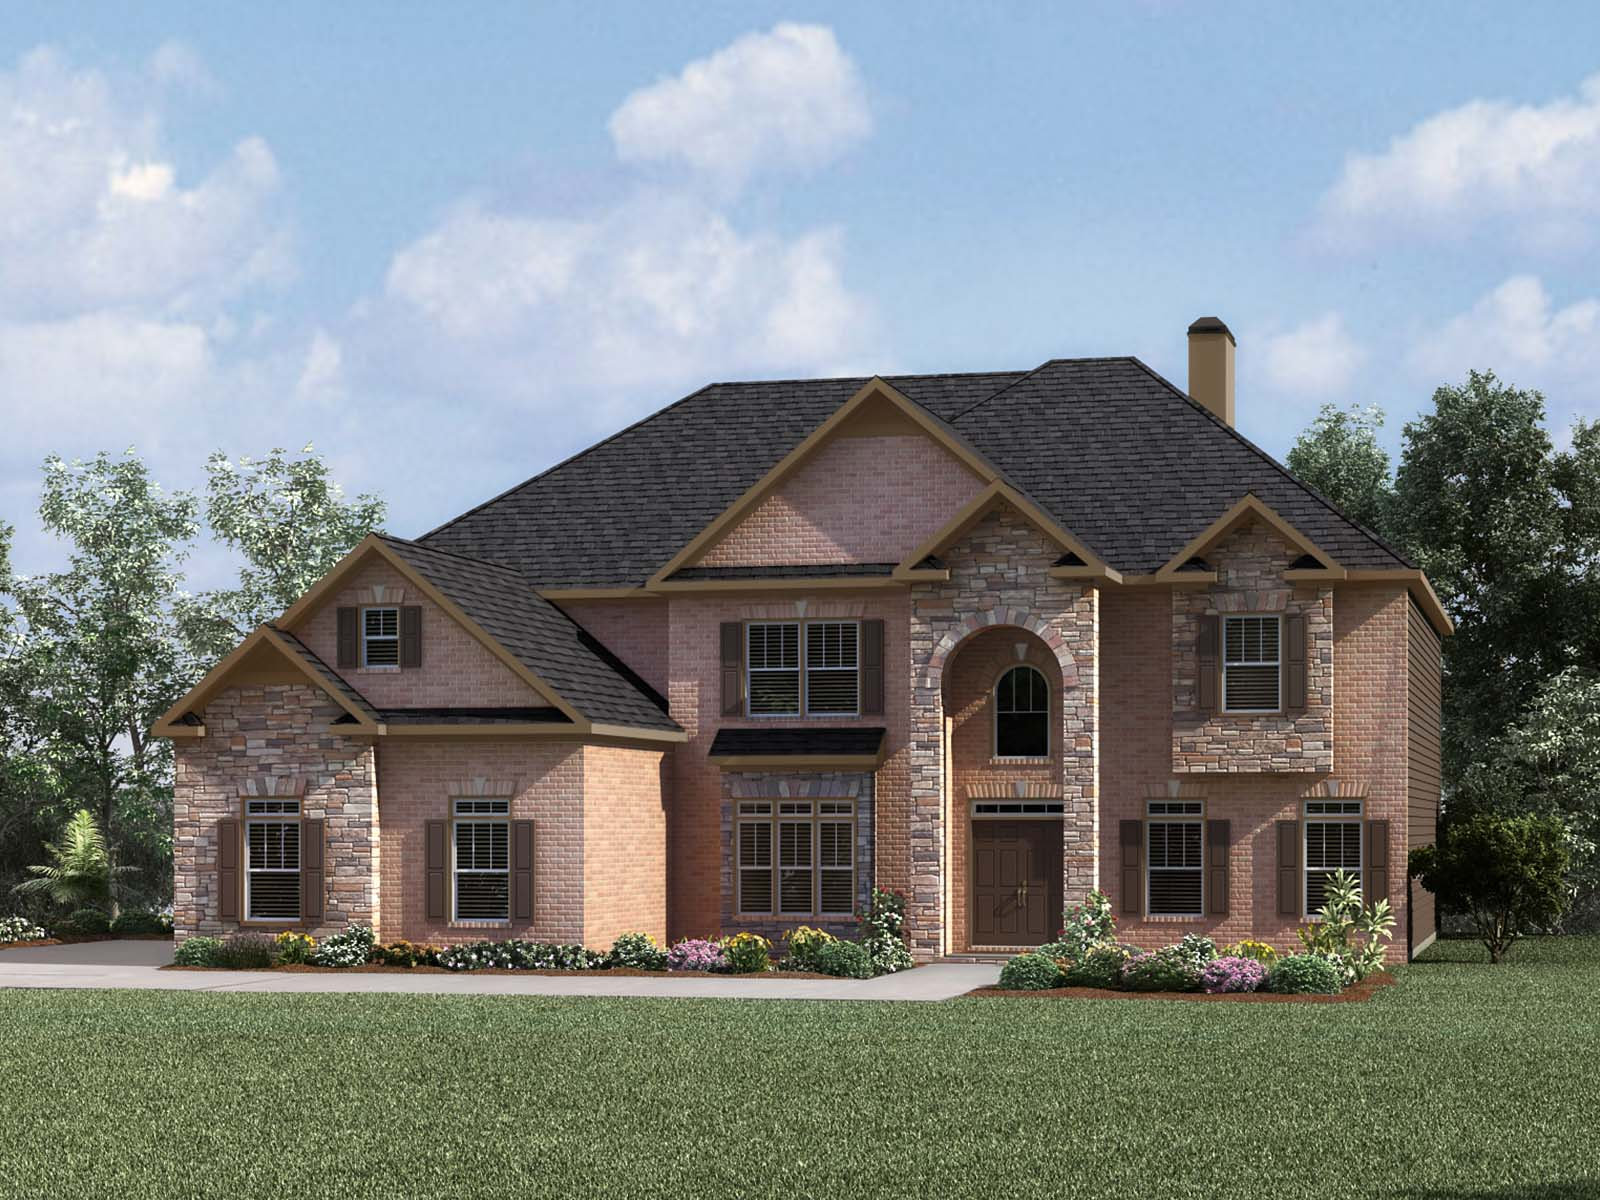 Chatsworth Model – 5BR 5BA Homes for Sale in Greer, SC ... on wausau homes floor plans, shelby homes floor plans, warehouse homes floor plans, regent homes floor plans, quadrant homes floor plans, huff homes floor plans,